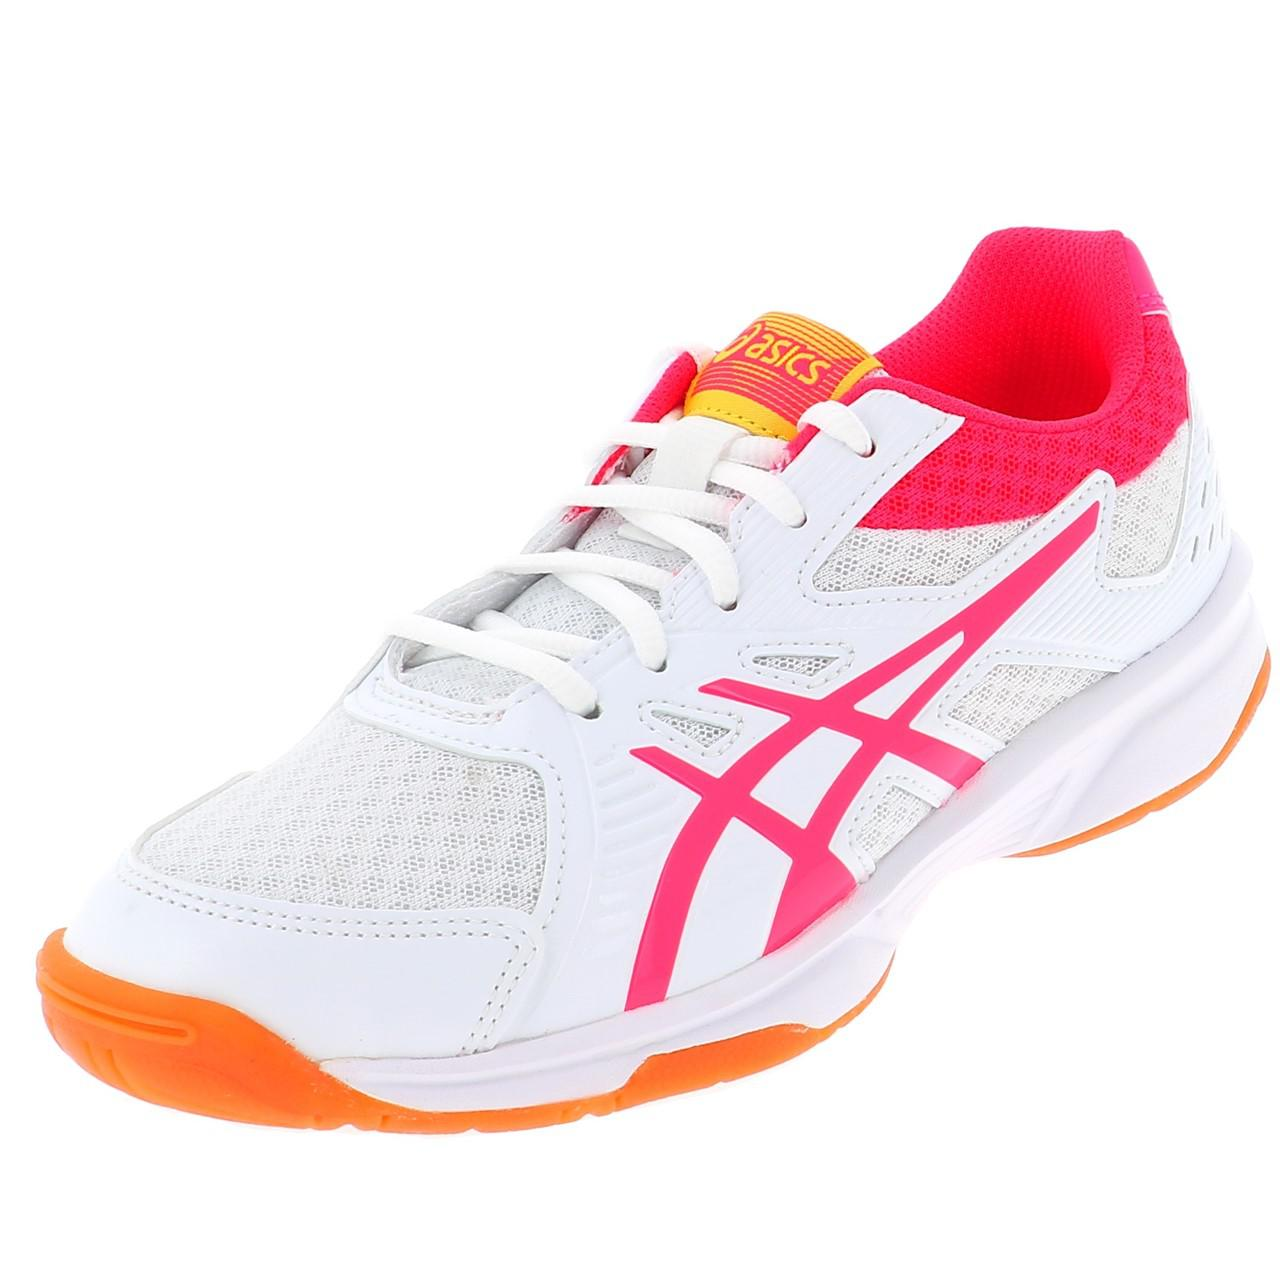 Shoes-Volleyball-Basketball-Asics-Upcourt-3-Wht-Indoor-G-White-19557-New